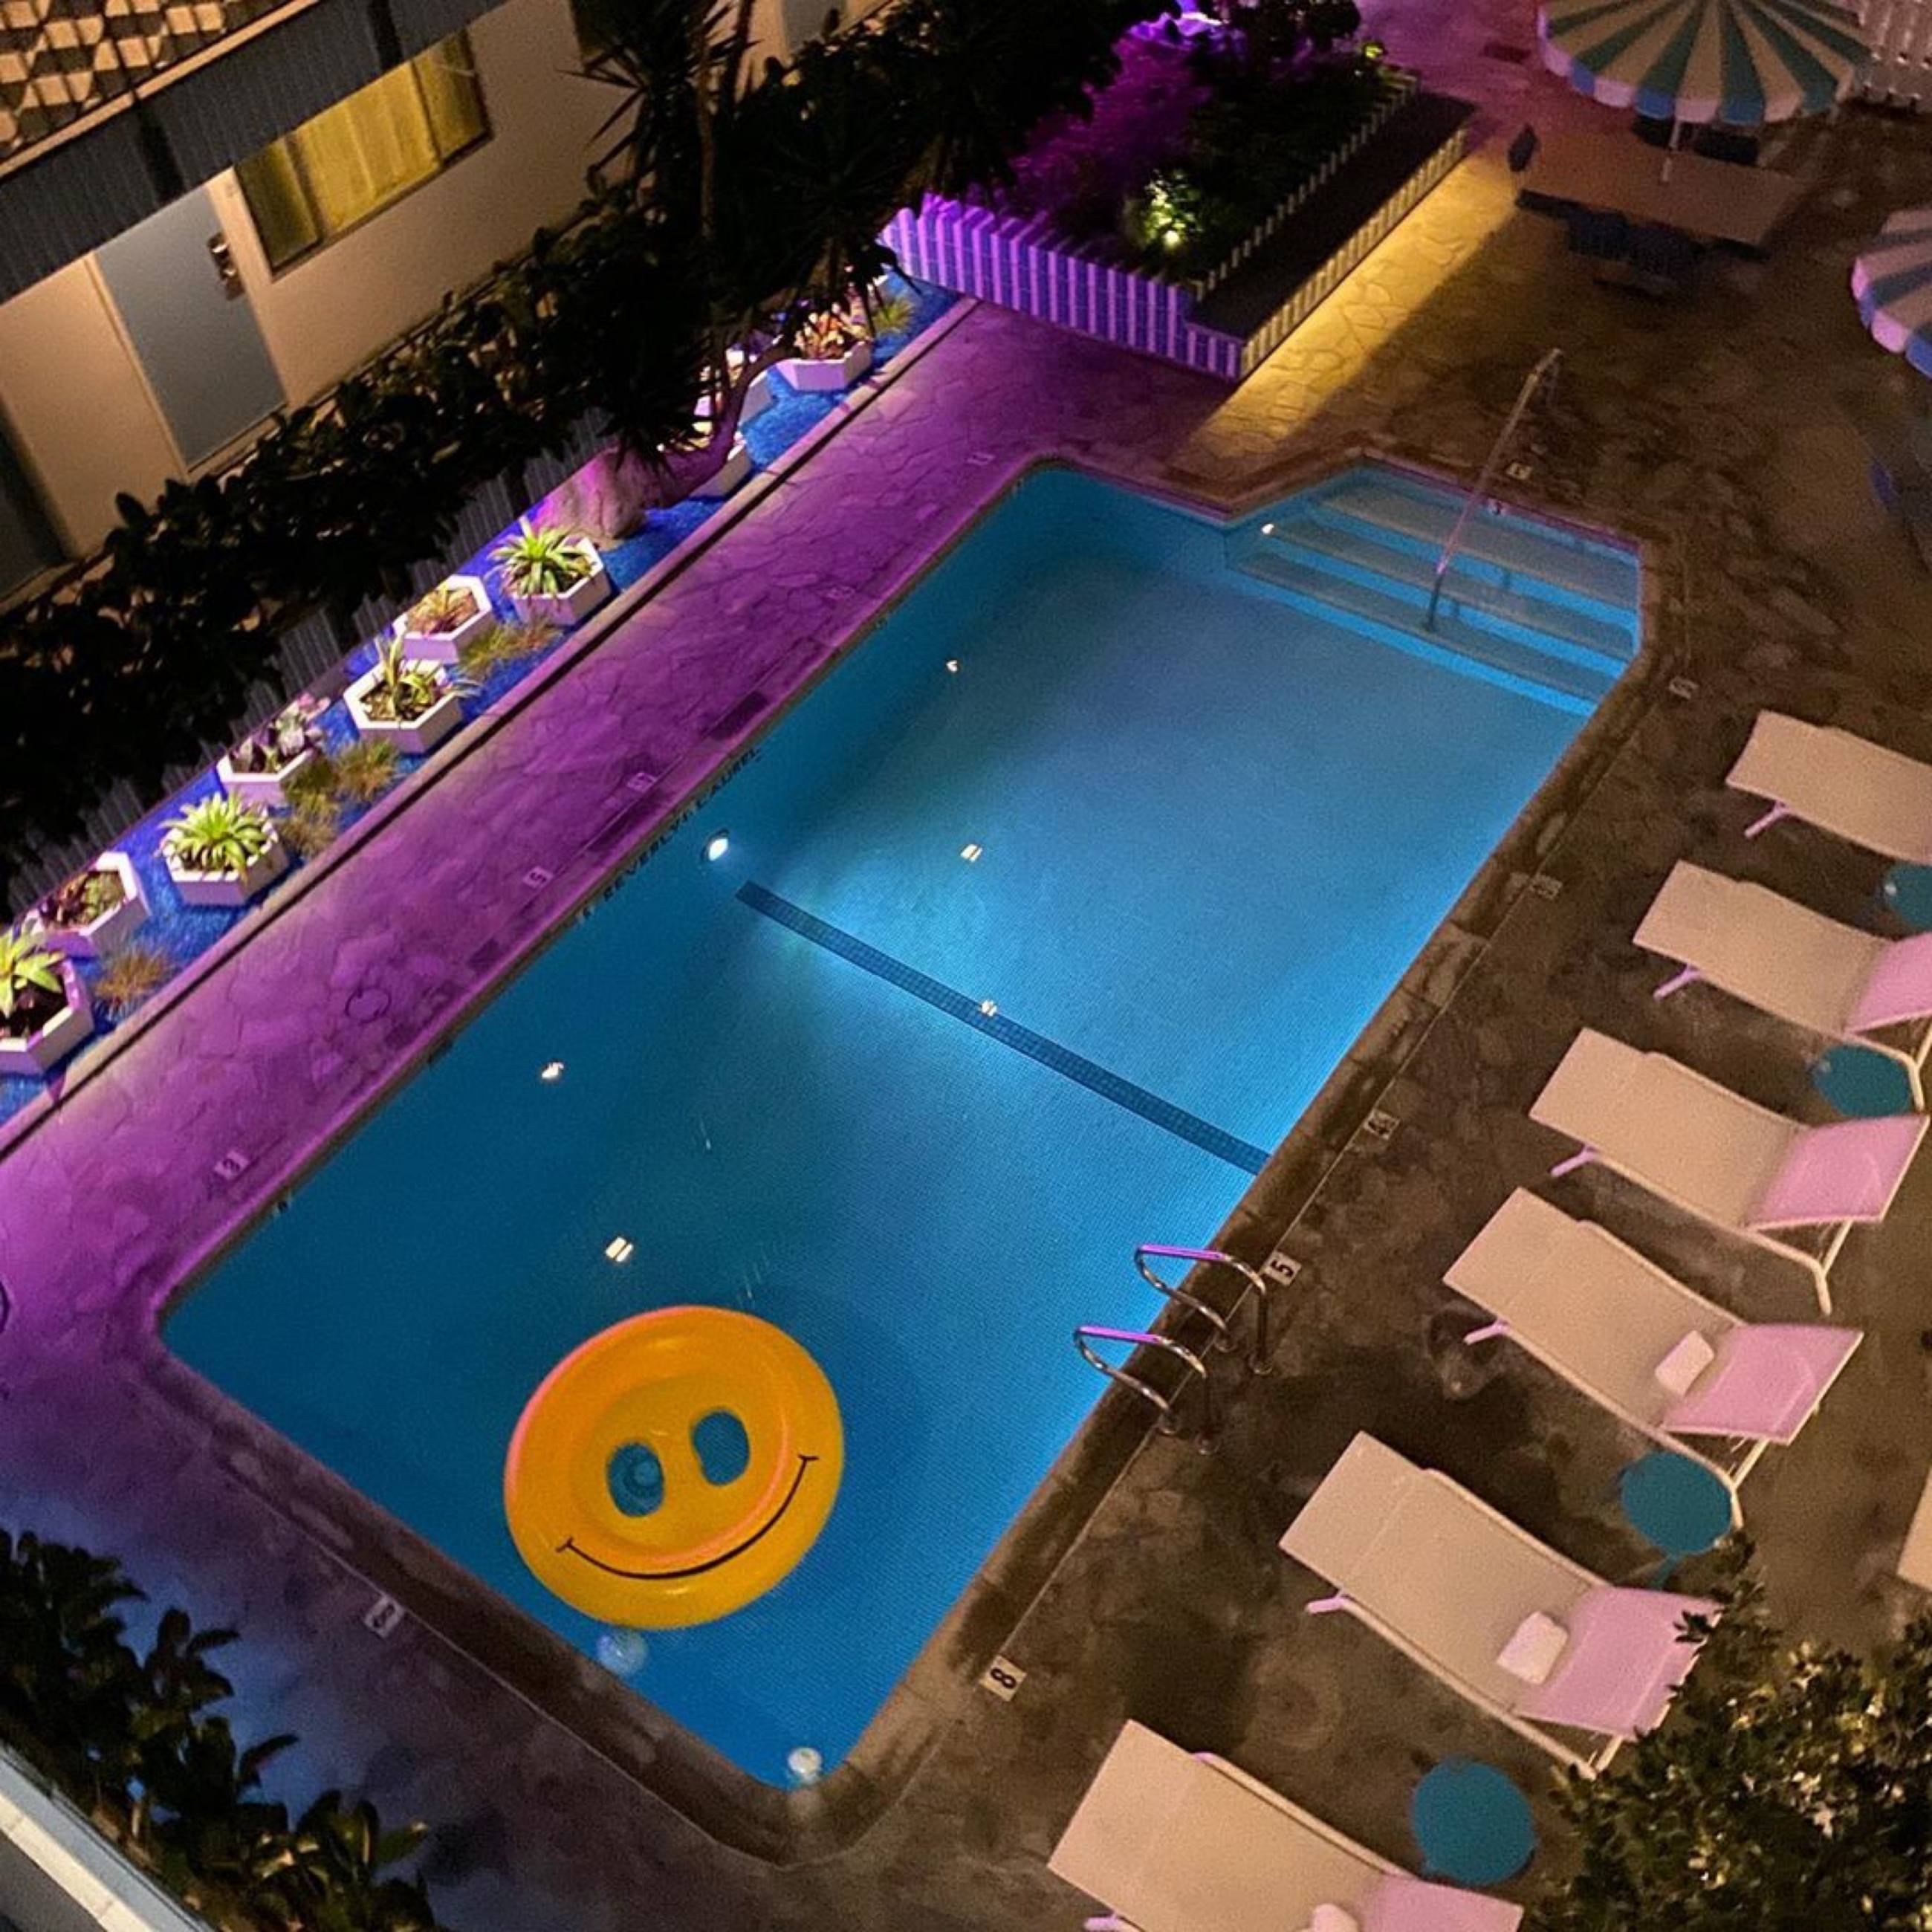 Smiley face floatie in the pool at the Beverly Laurel Motor Hotel